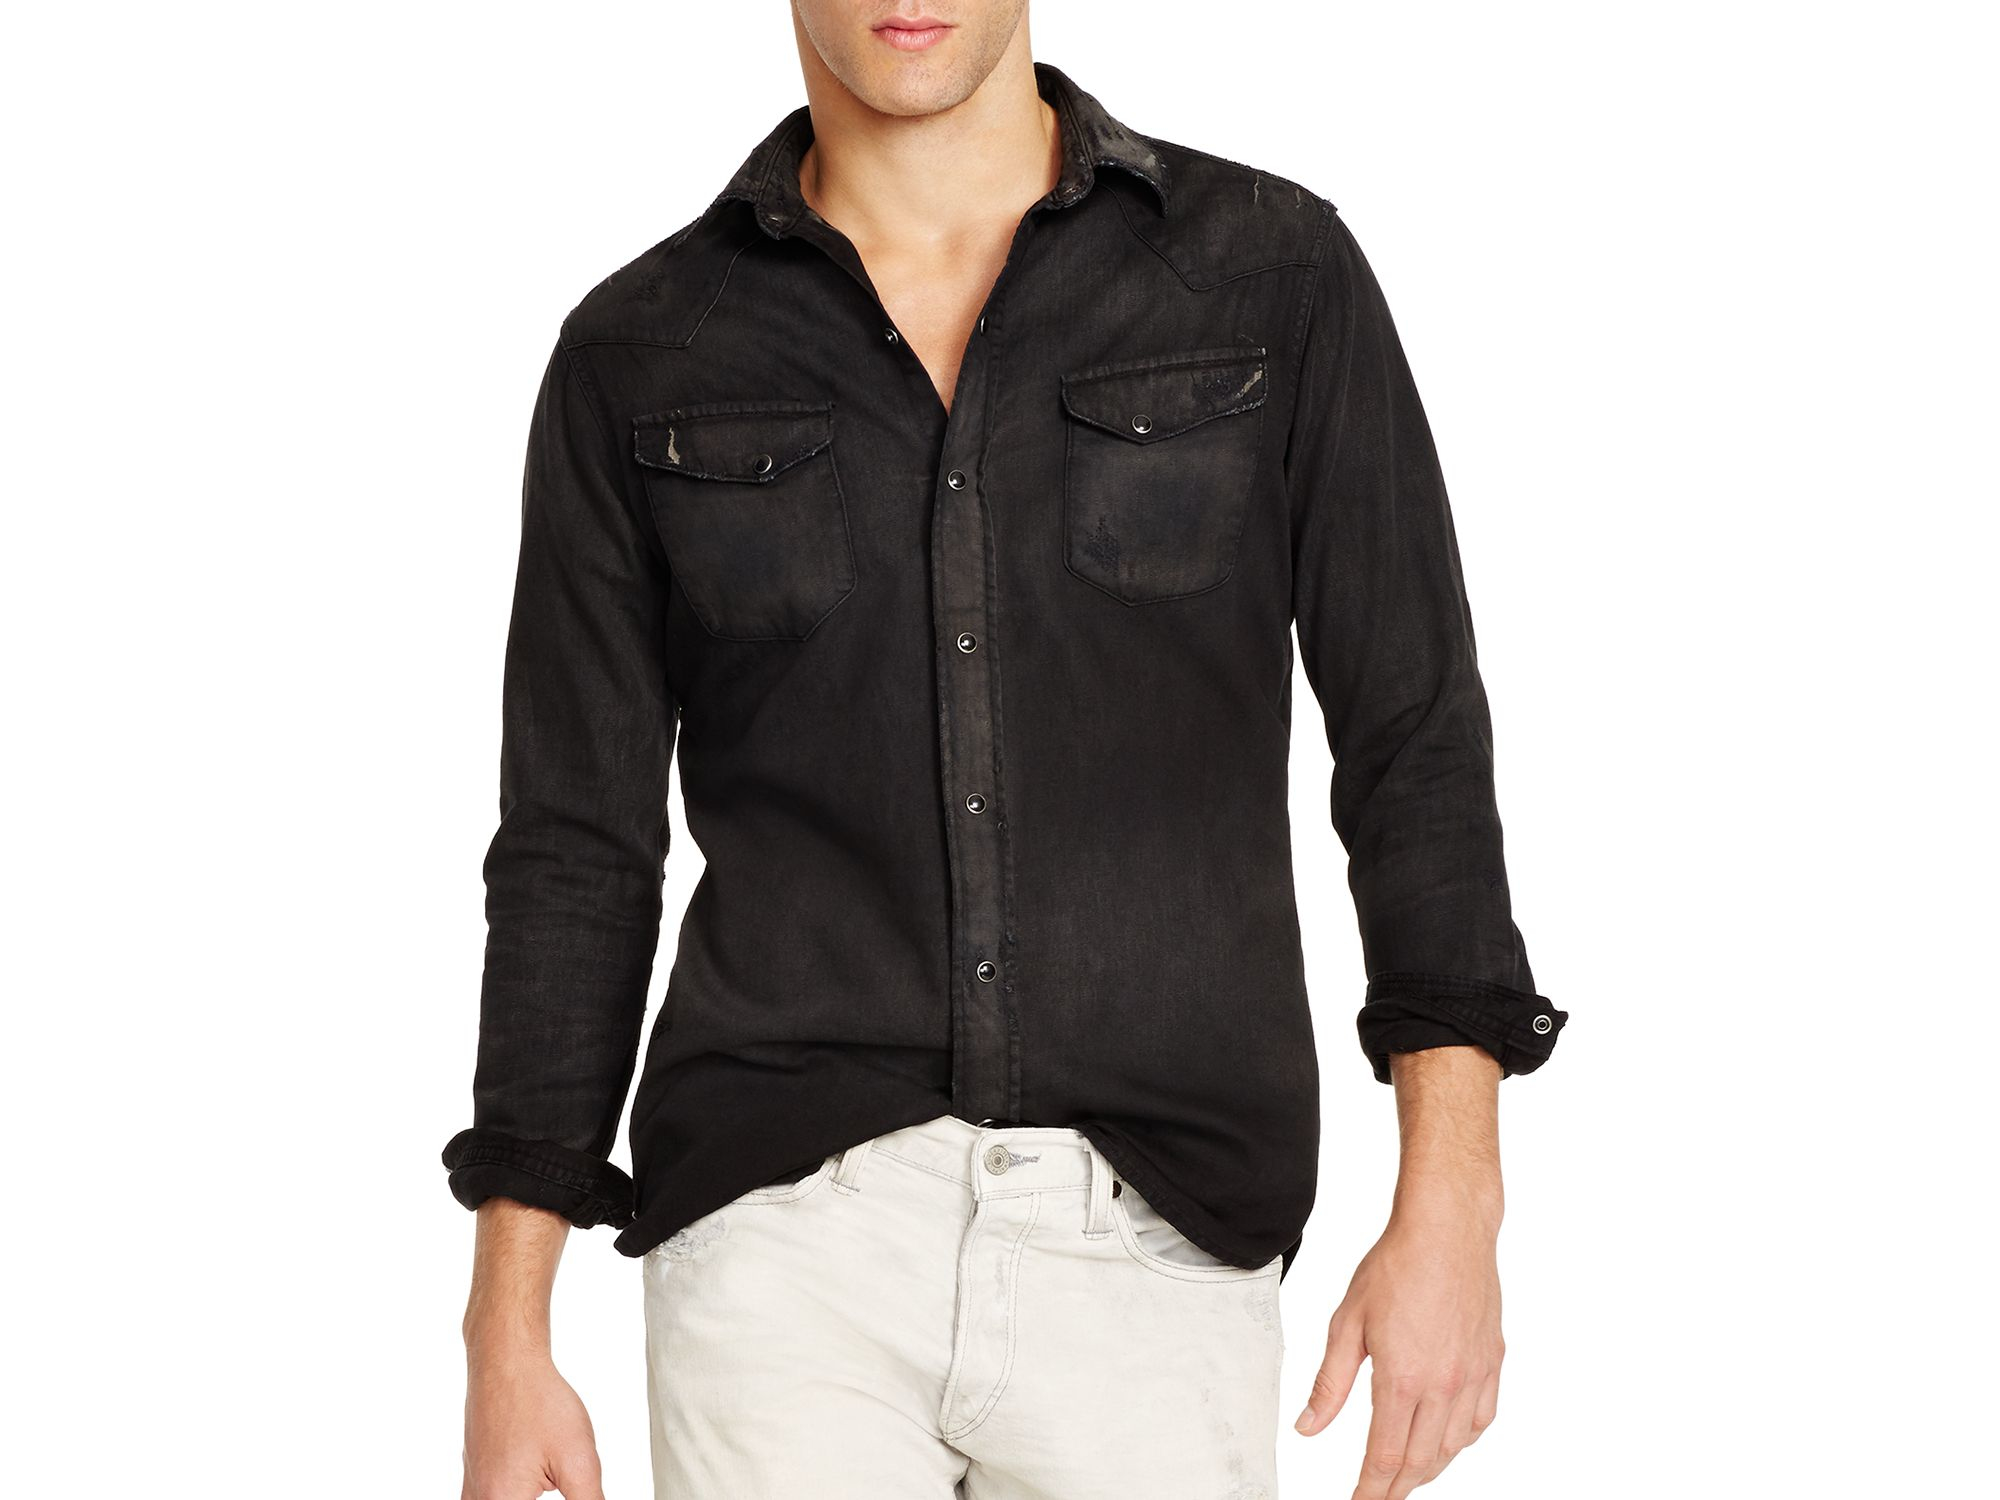 Lyst - Polo ralph lauren Slim Fit Denim Button Down Shirt in Black ...